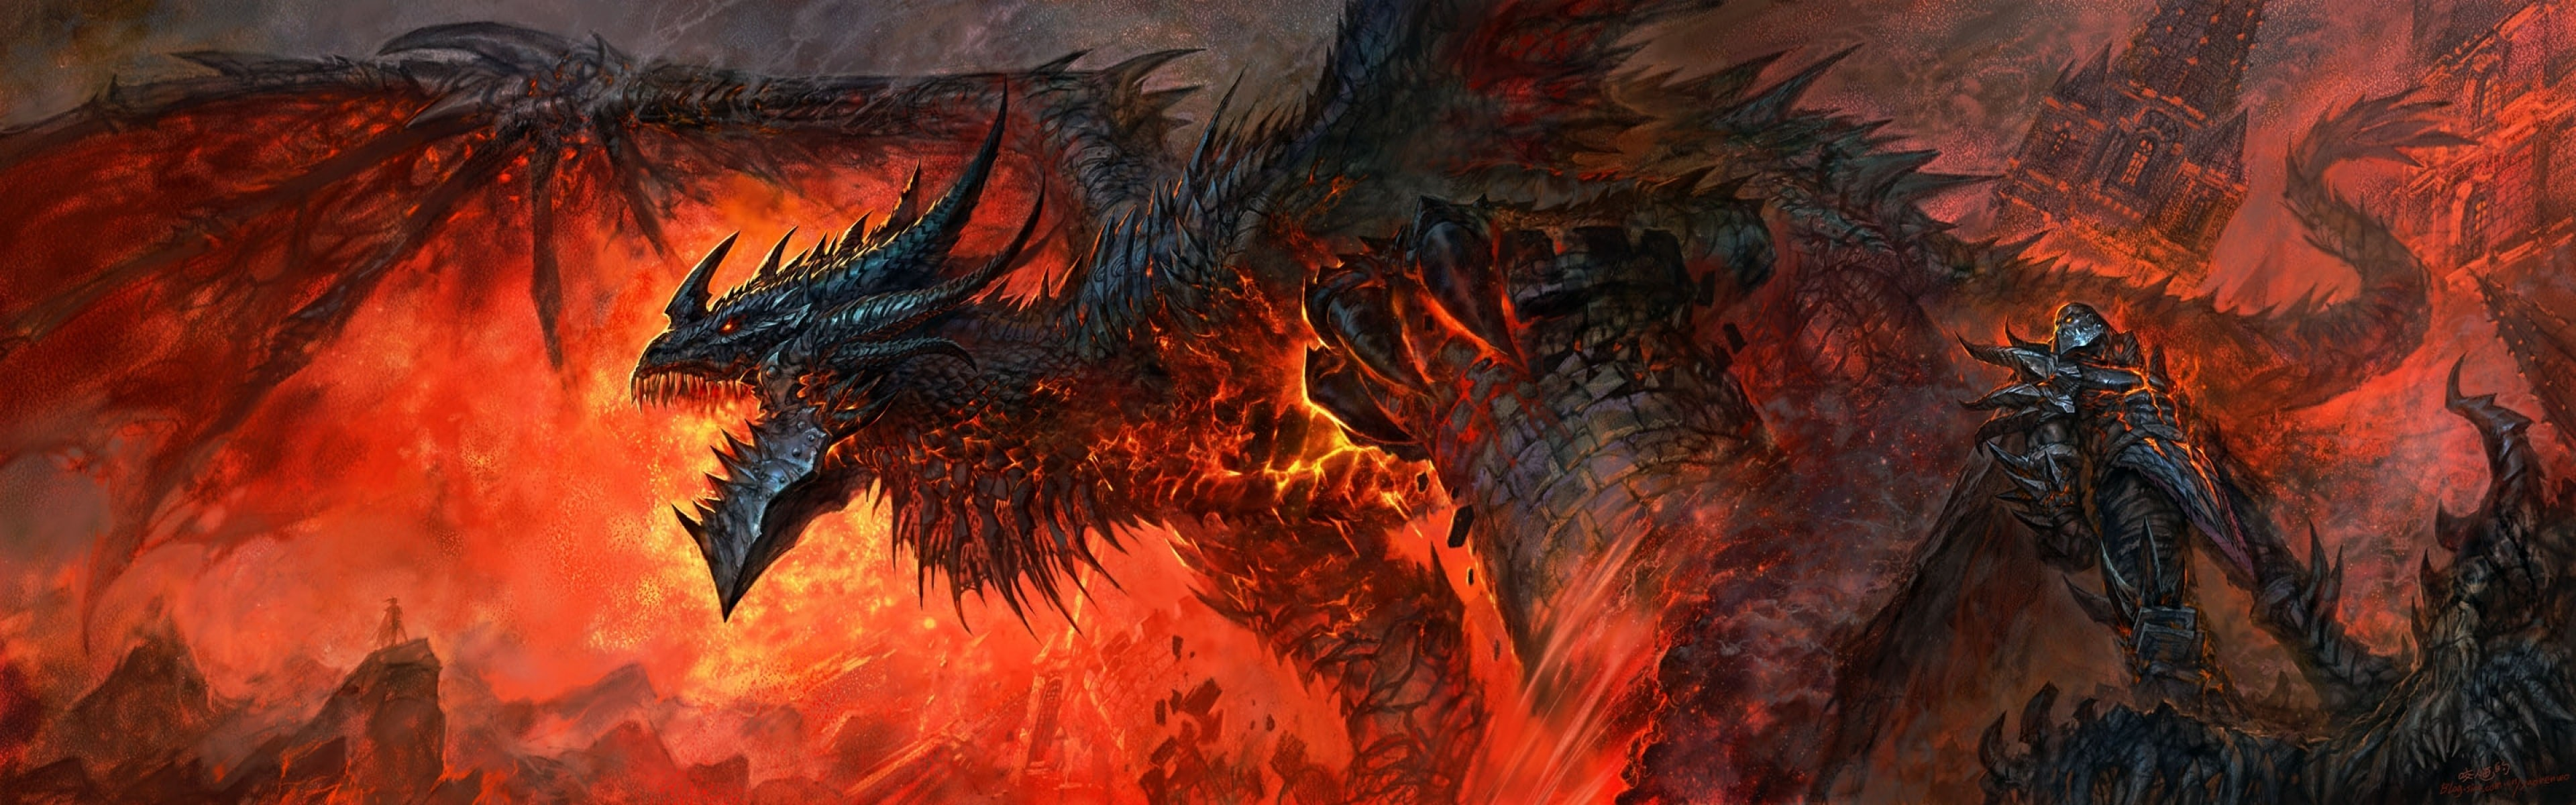 WOW: Deathwing HD pics WOW: Deathwing Wallpapers hd